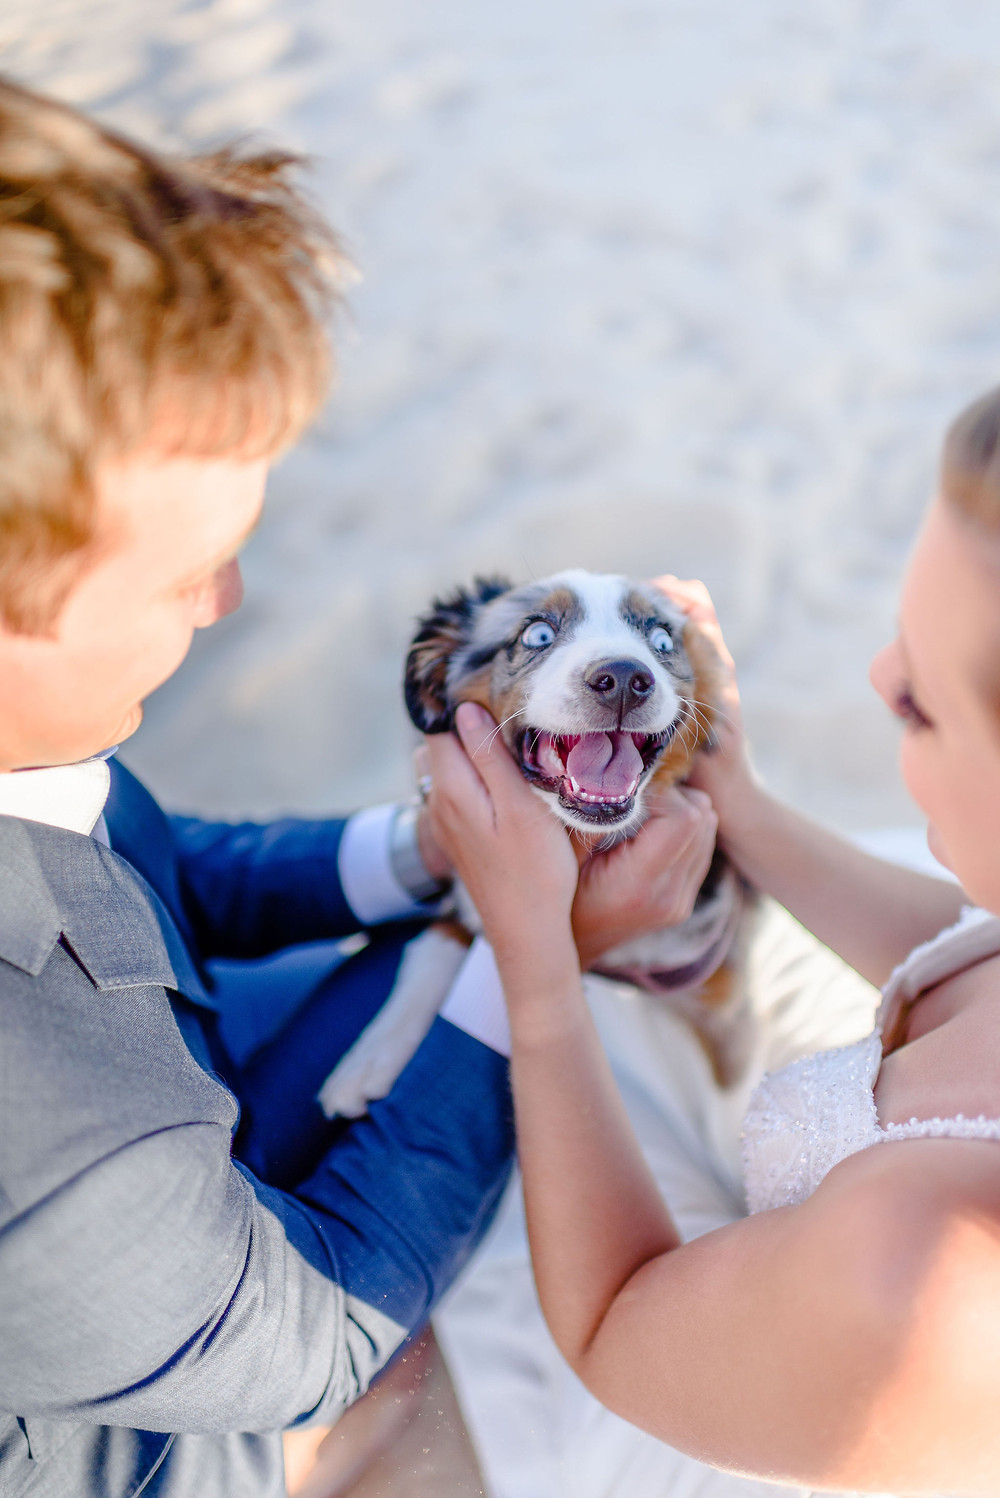 photo of the dog's face between the couple. You cannot see the couple as they are cropped out and also the angle is coming from behind them. The dog looks very happy and has his tongue out while the owners pet him